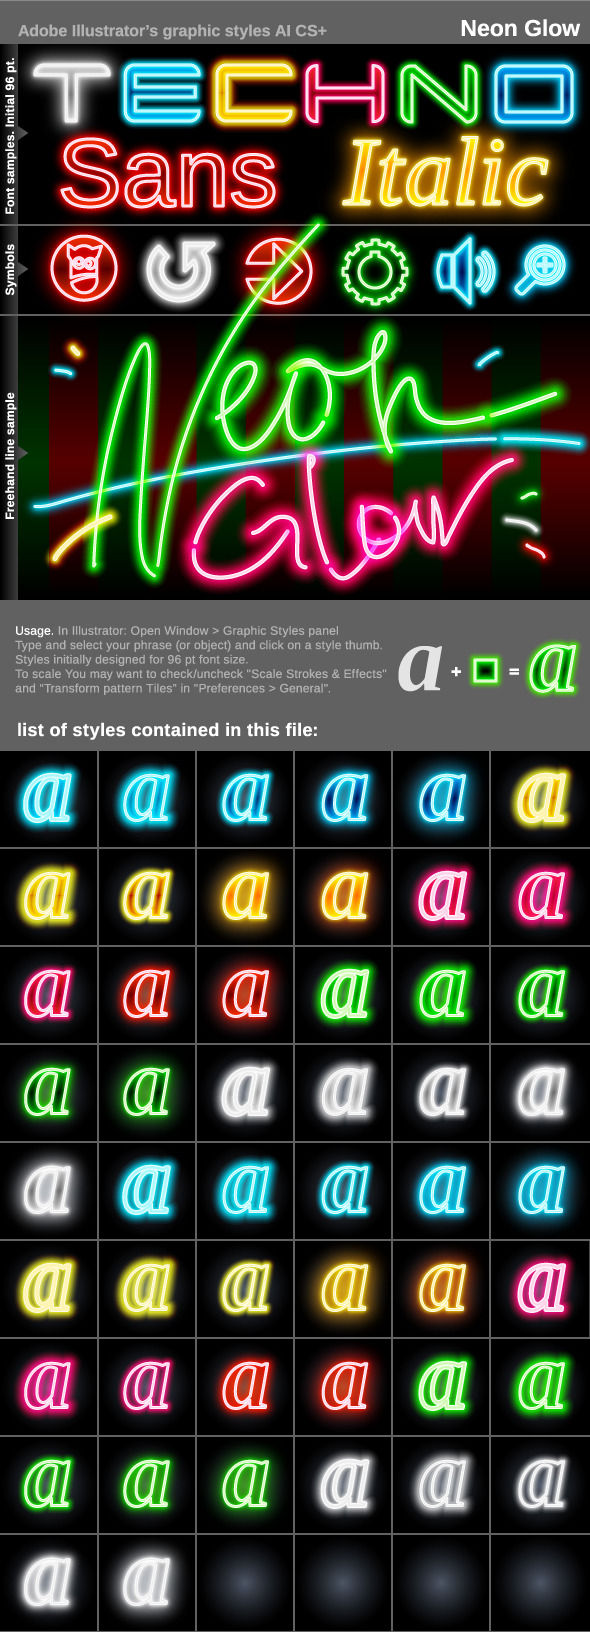 Illustrator Graphic Styles Neon Glow